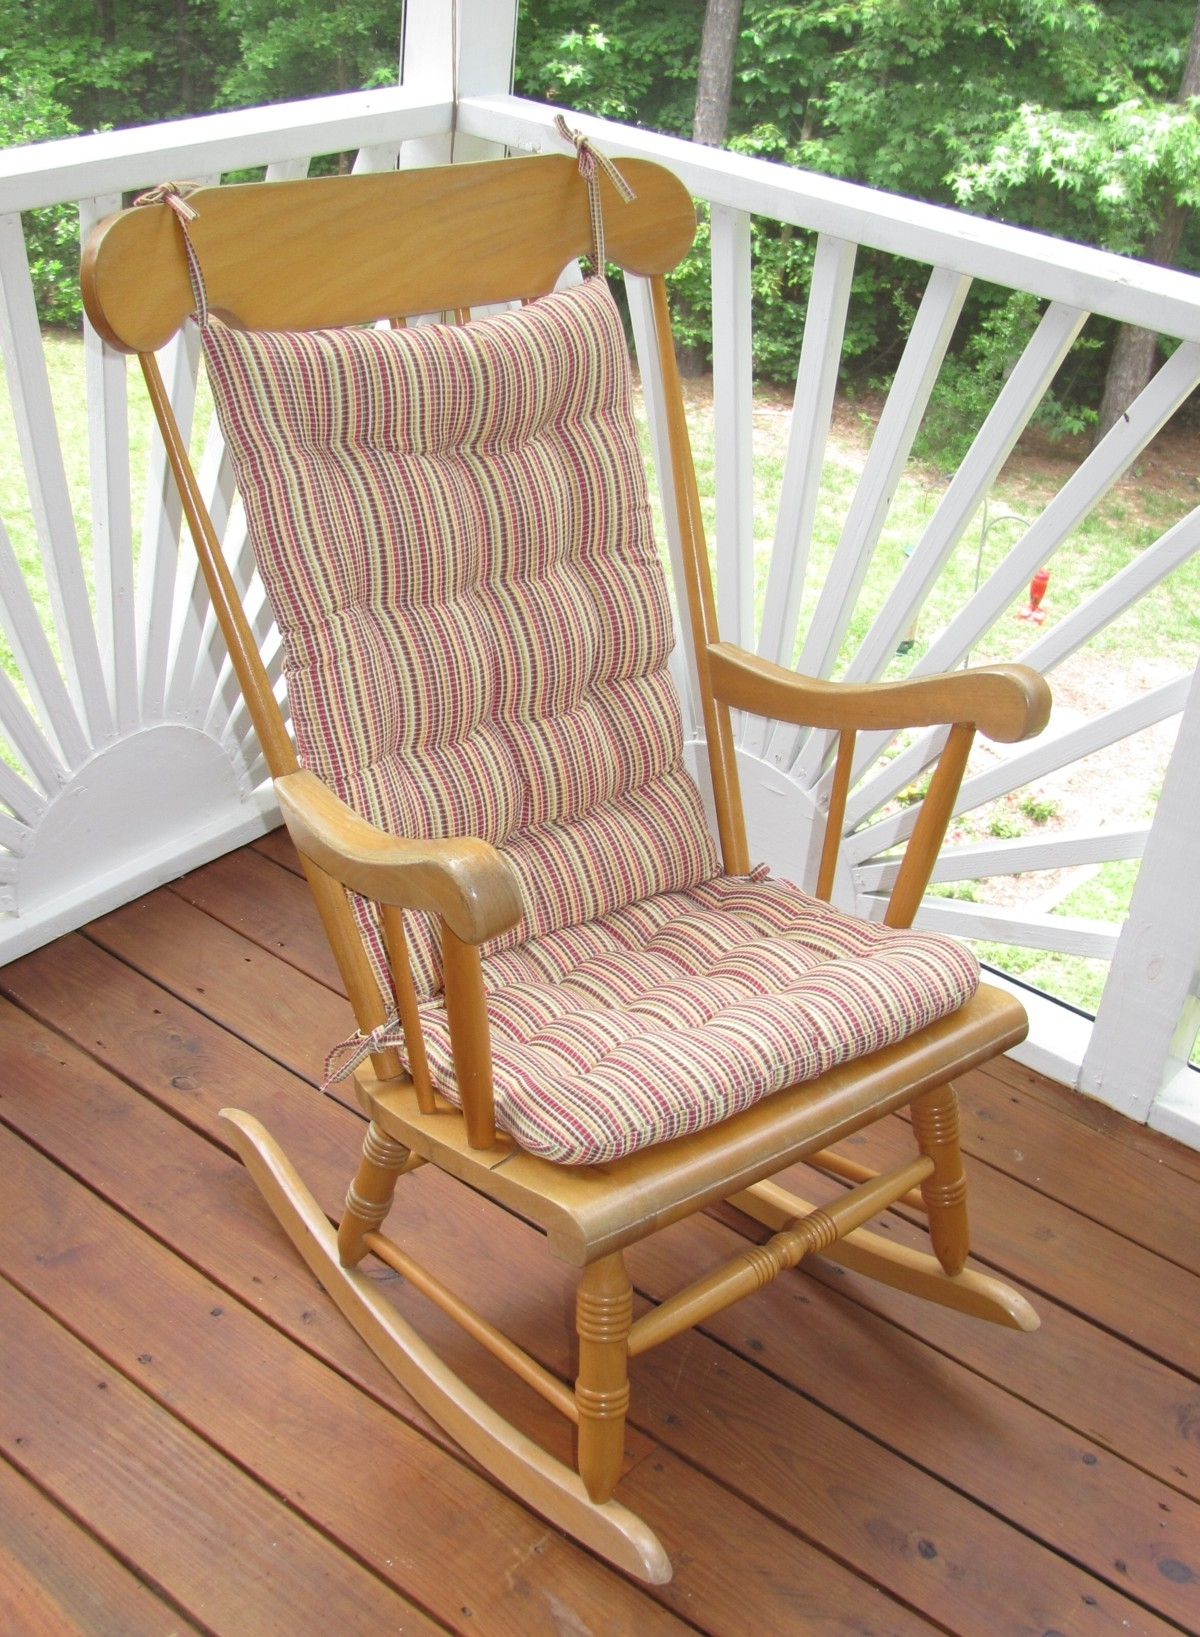 Most Recent Rocking Chair Cushions For Outdoor Regarding Outdoor Rocking Chair Cushions Type : Beautiful Outdoor Rocking (View 15 of 20)